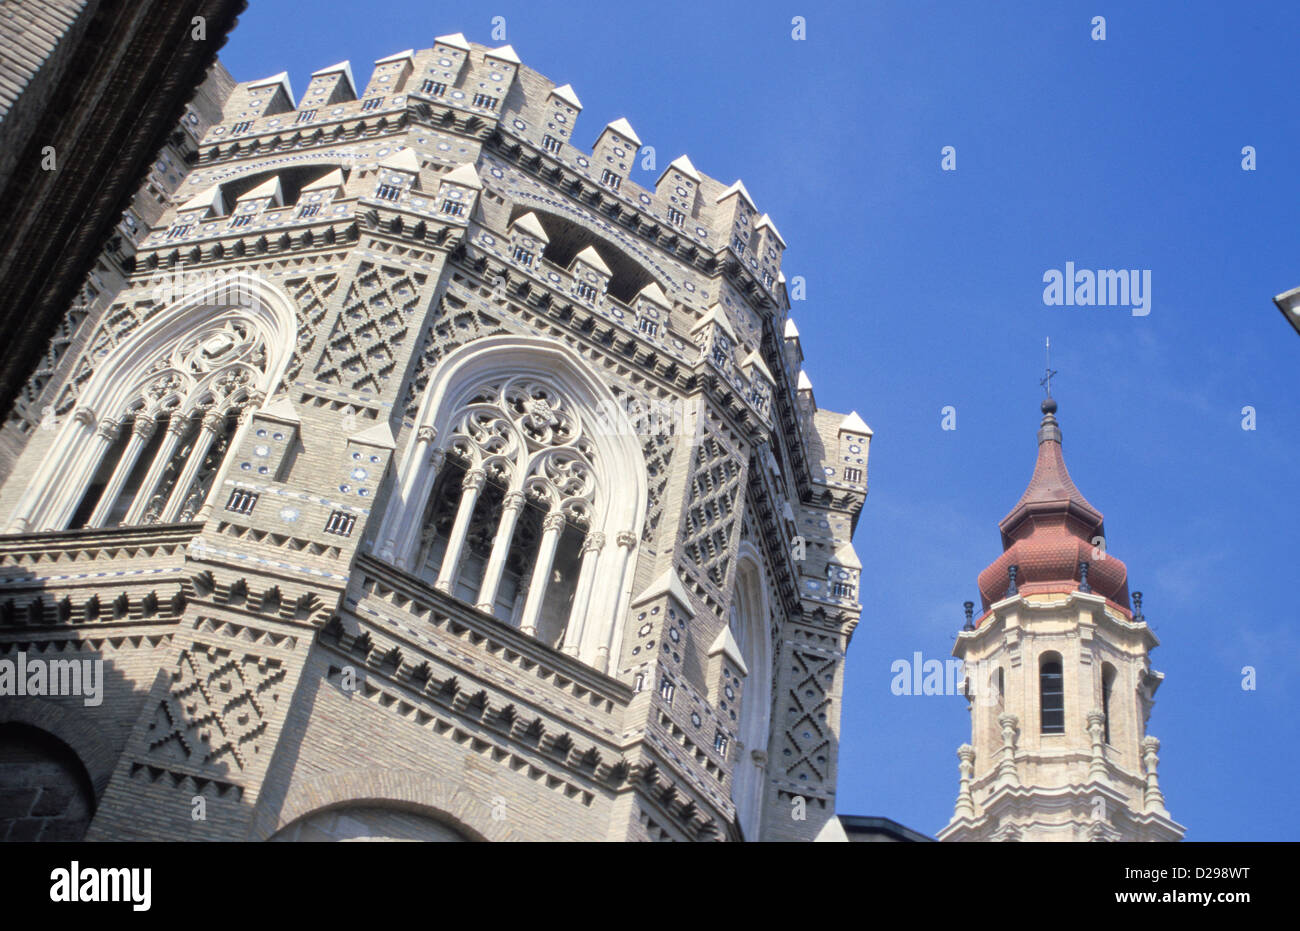 Spain, Zaragoza. La Seo, Mixture Of Architectural Styles. - Stock Image